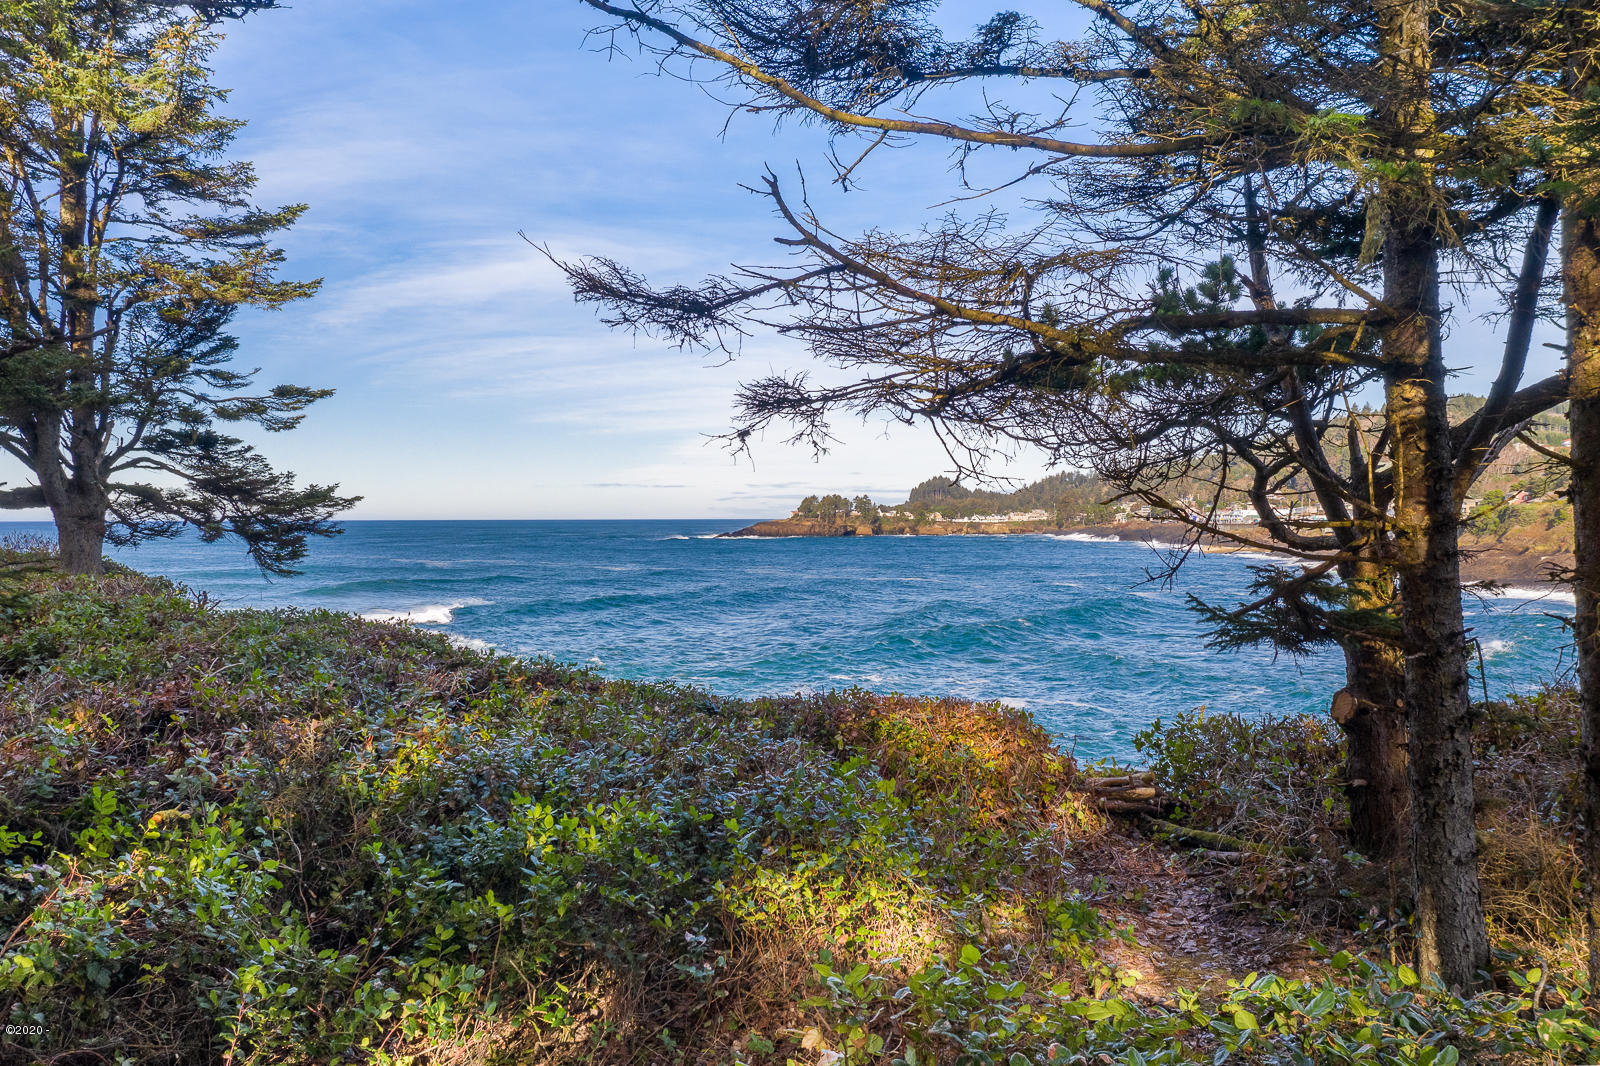 TL 100/200 Cliff St, Depoe Bay, OR 97341 - What a Gorgeous View